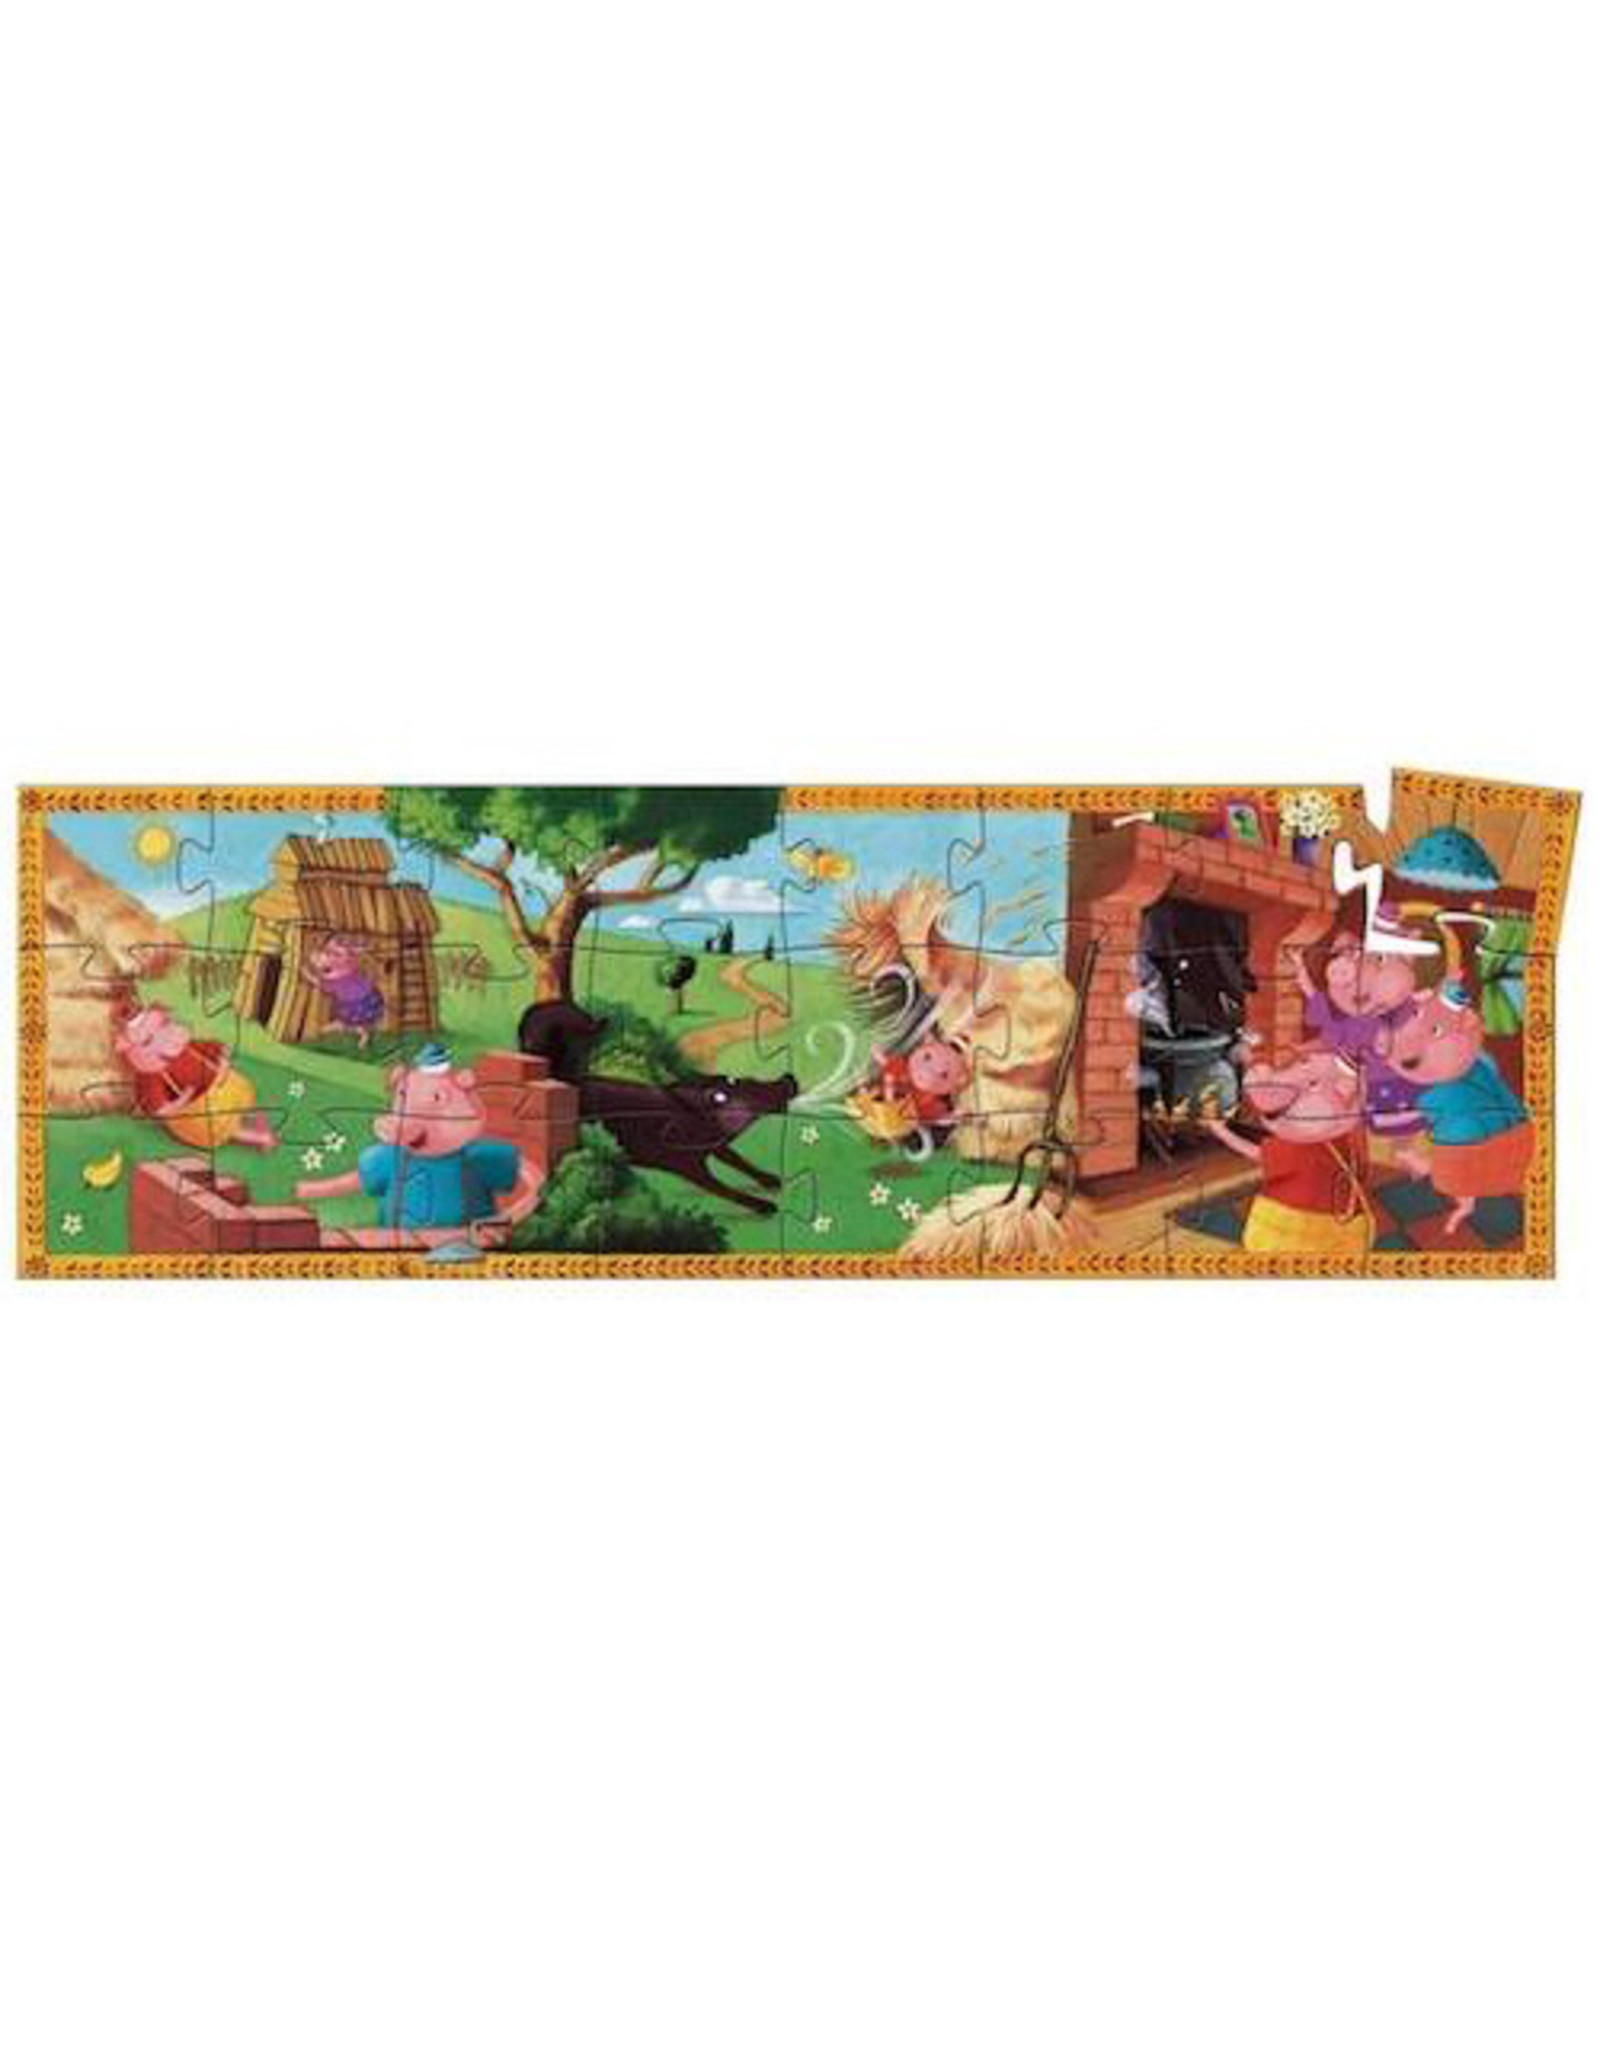 Djeco Silhouette Puzzles - The 3 Little Pigs - 24pcs